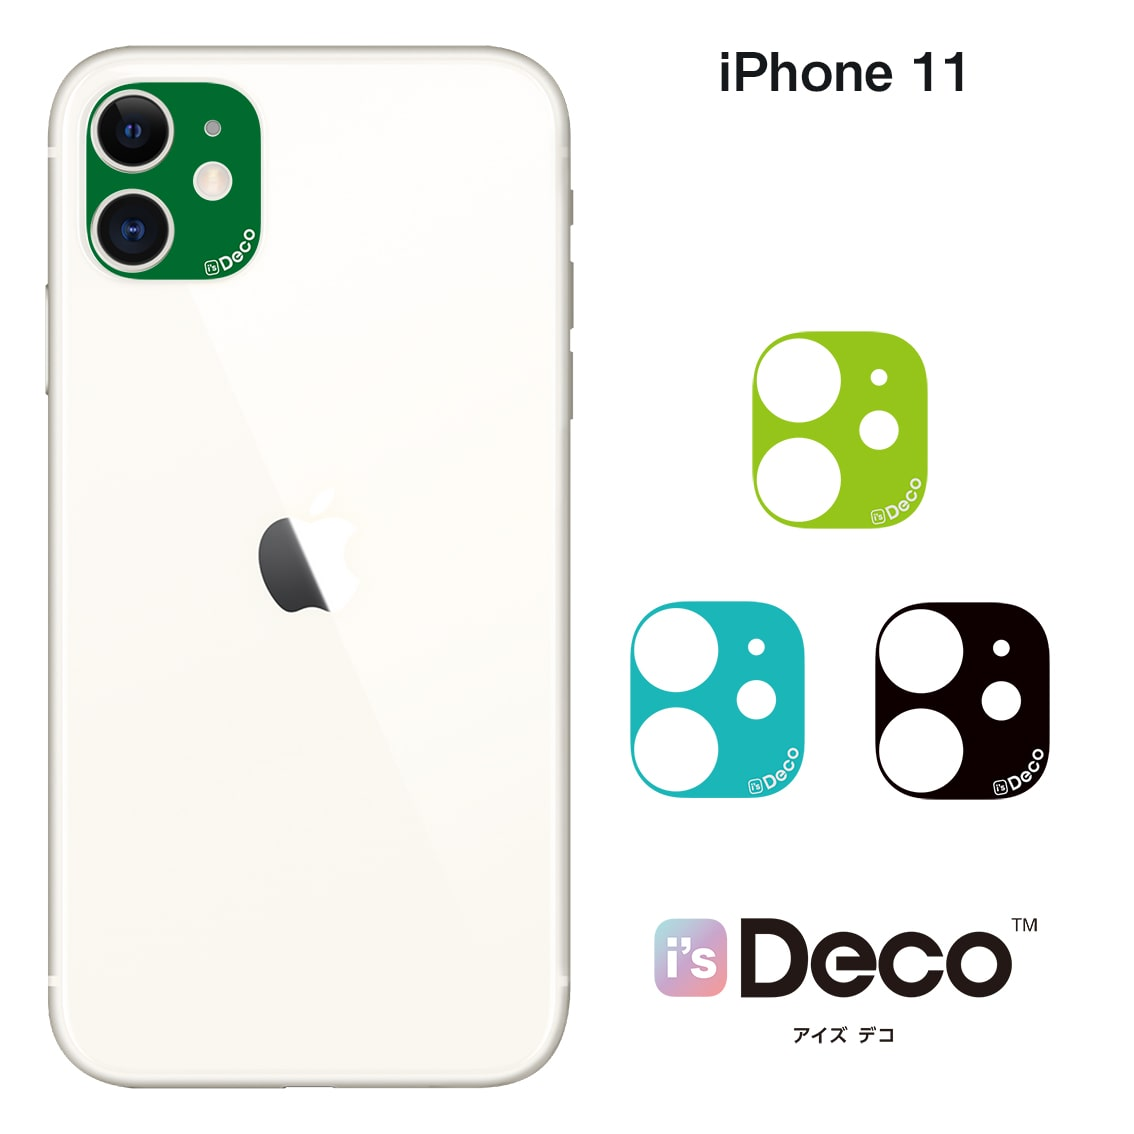 iPhone 11   i's Deco [STANDARD COLOR (B05-B08)]